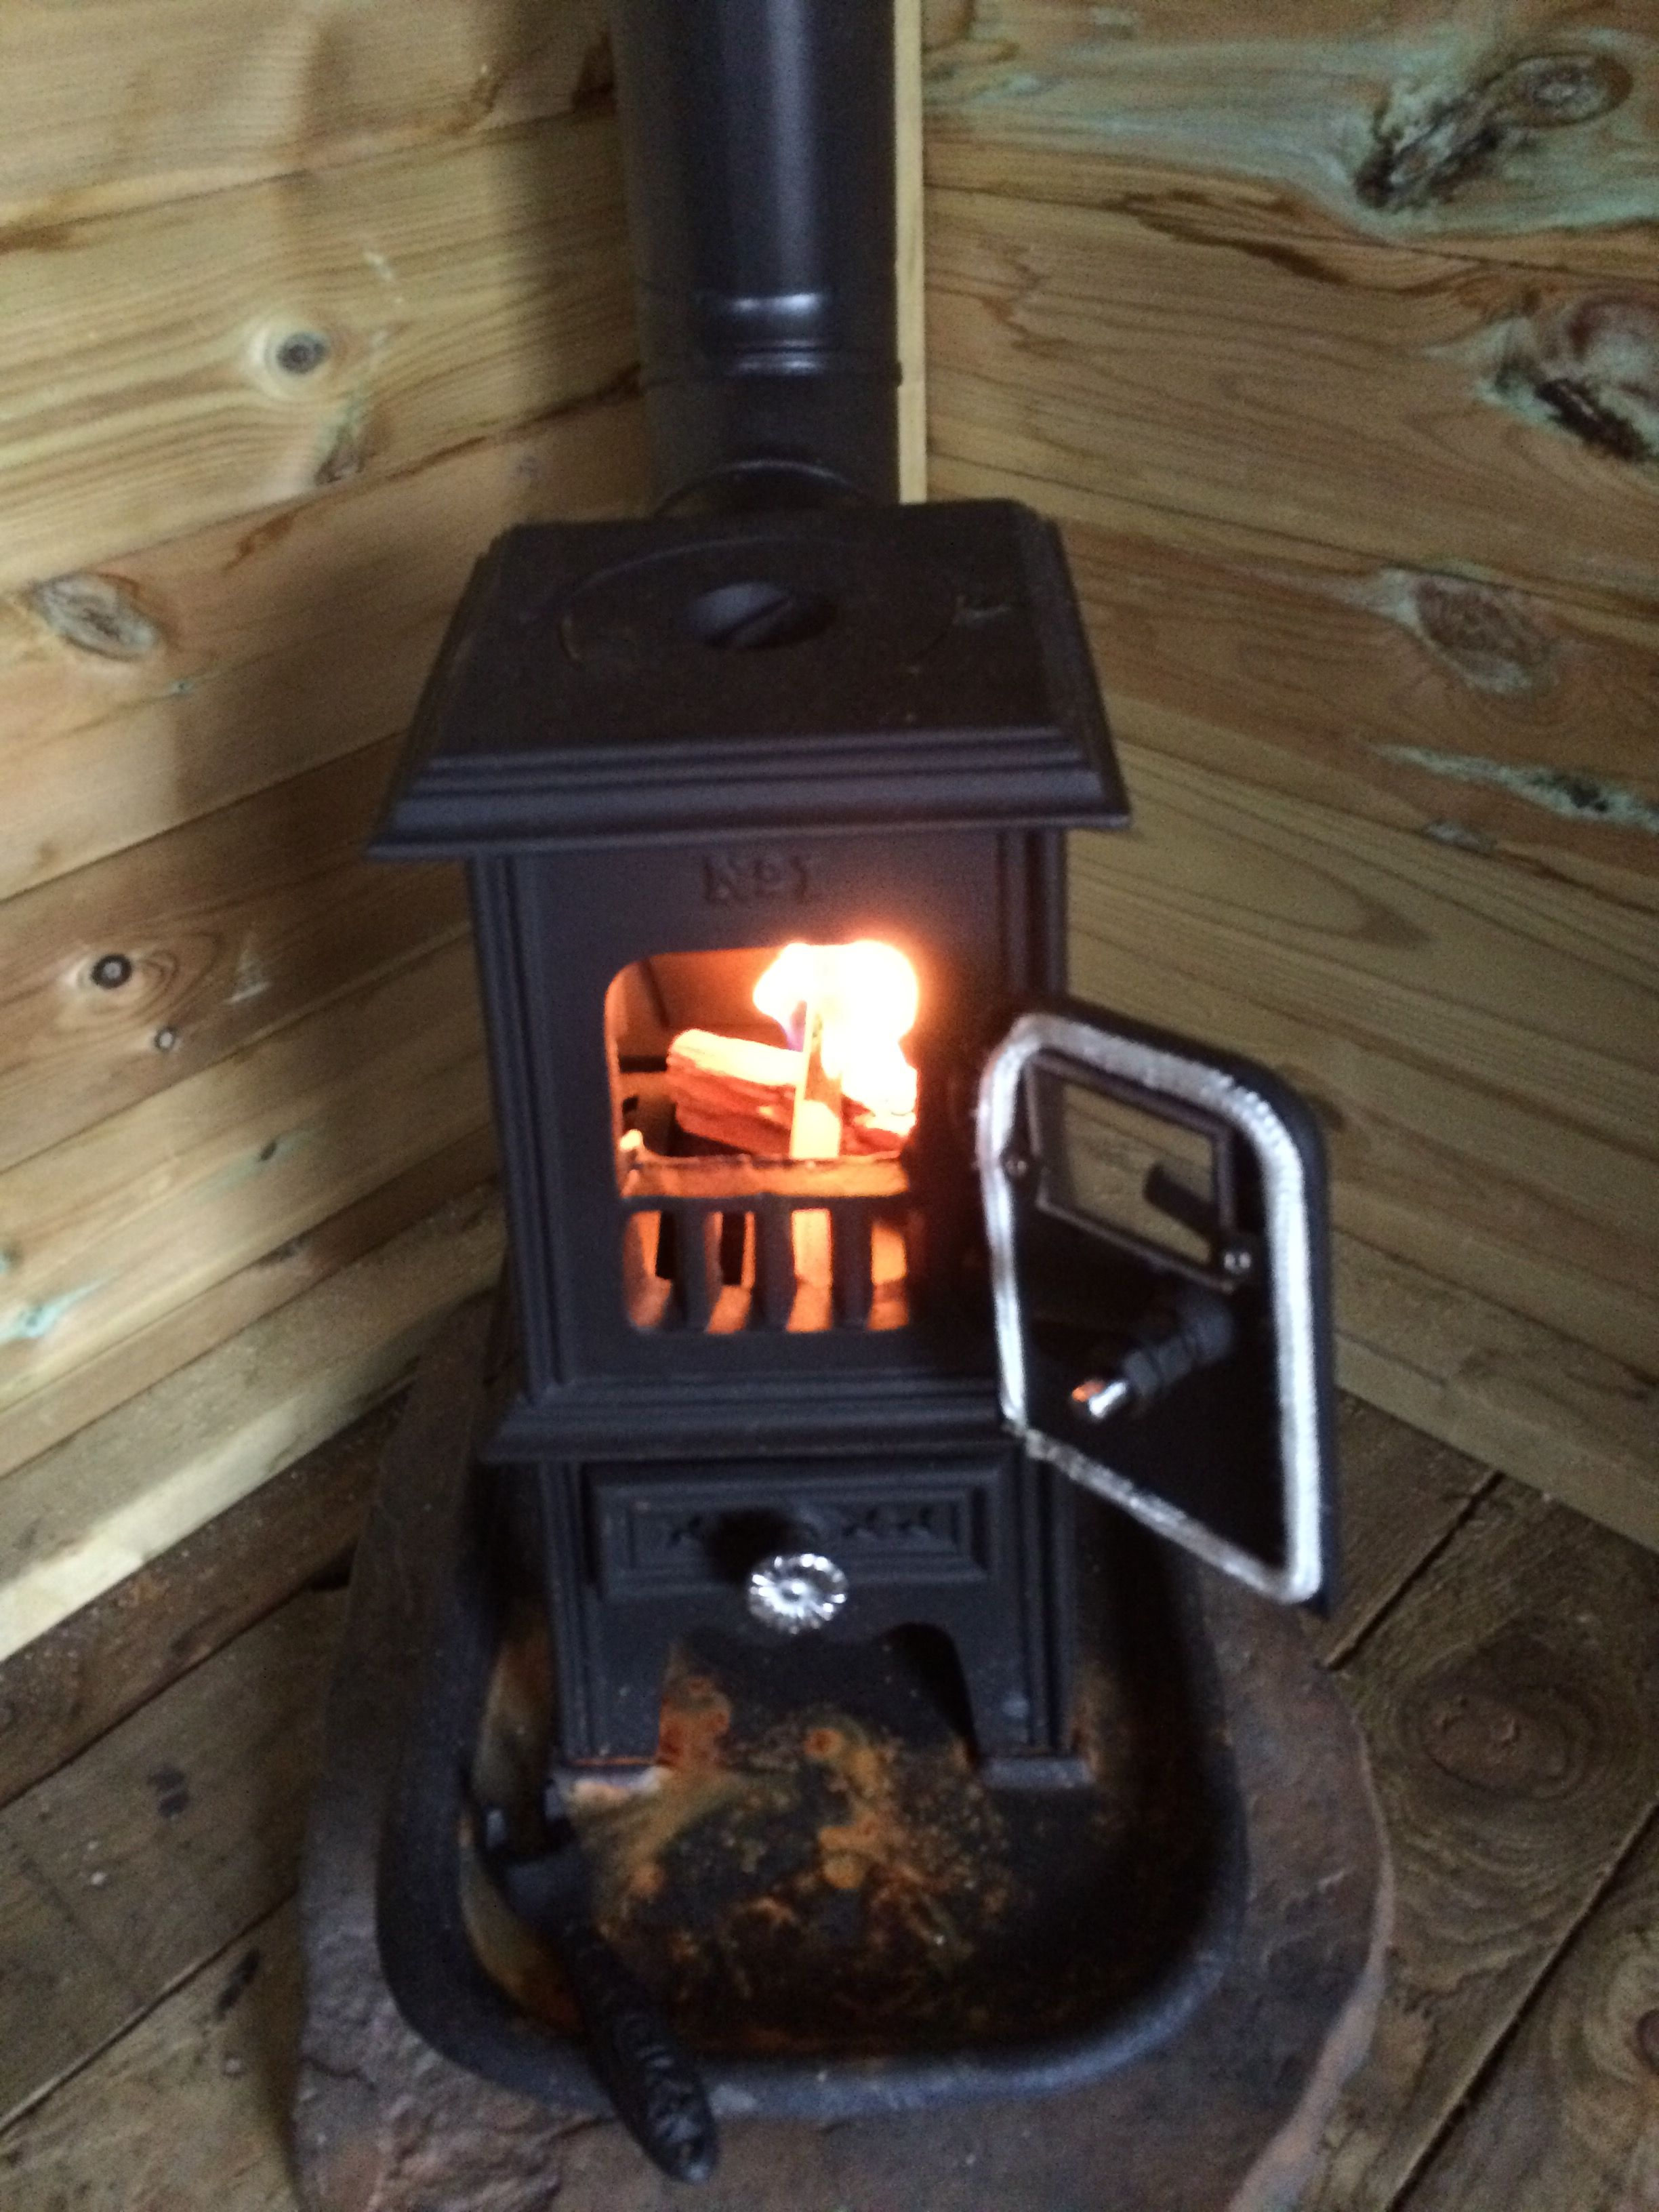 My Little Lottie Pipsqueak Stove Poele A Bois Bois Maison